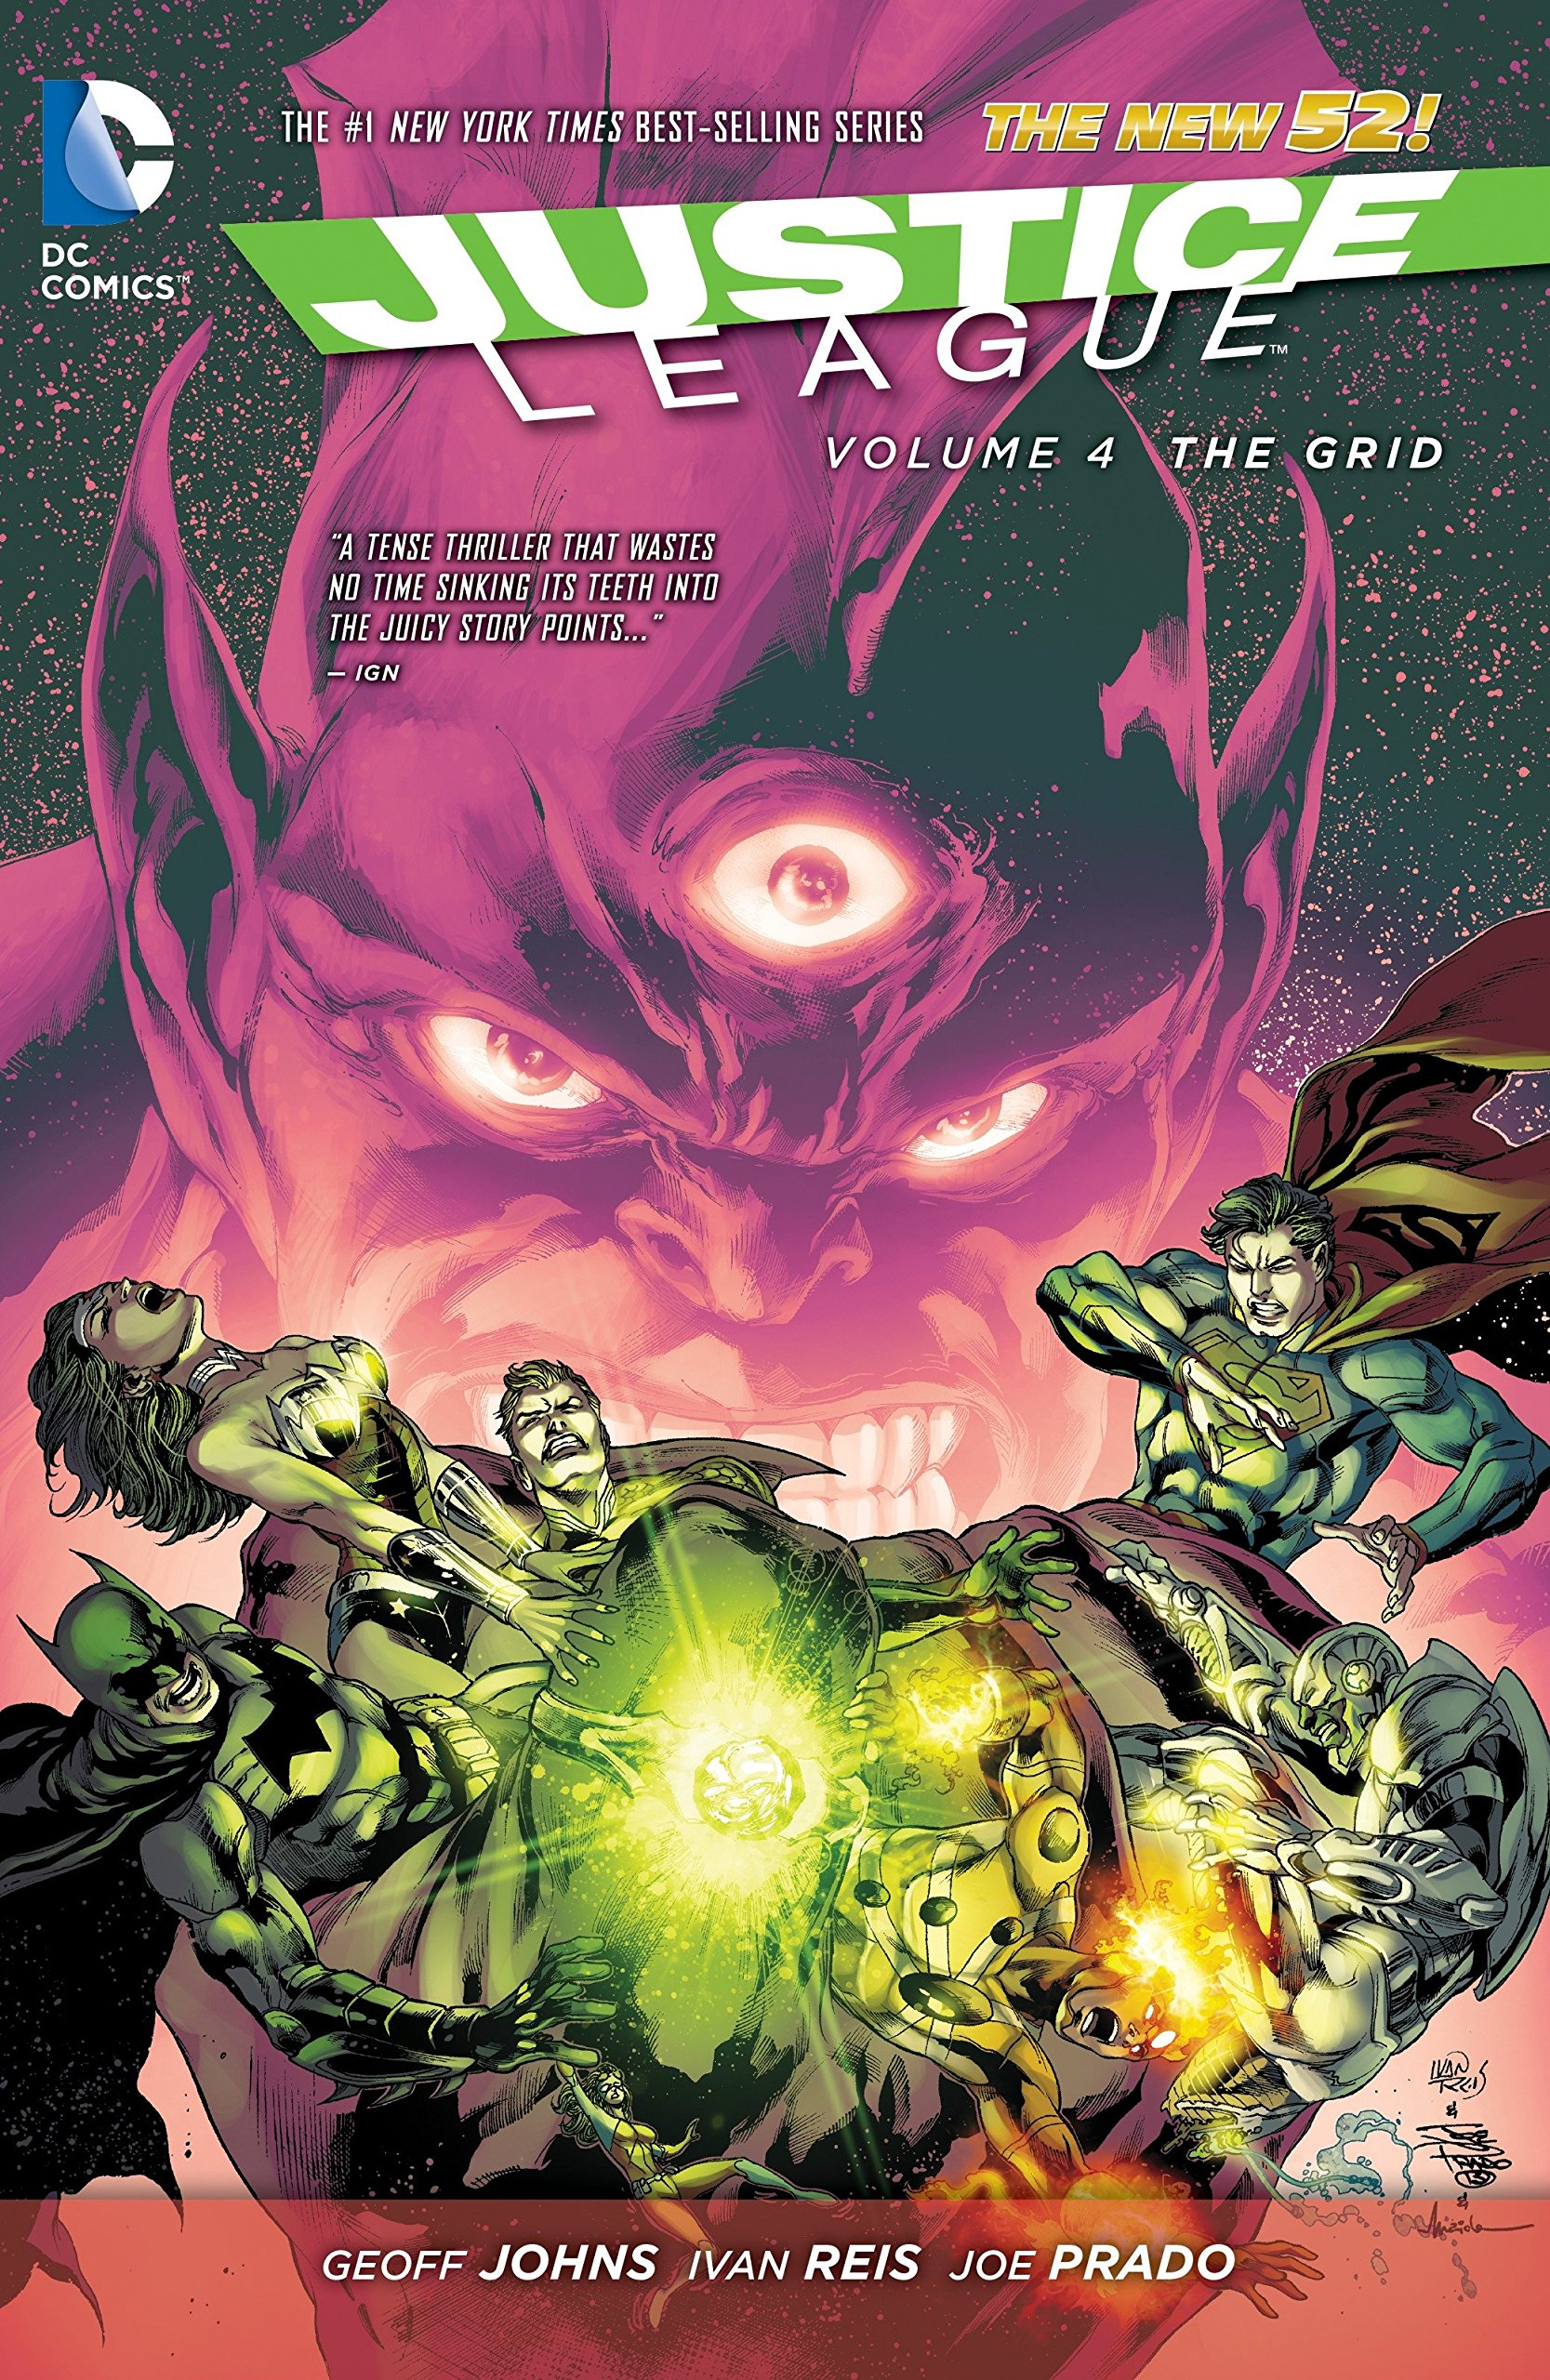 Justice League Vol. 4: The Grid (The New 52) pdf